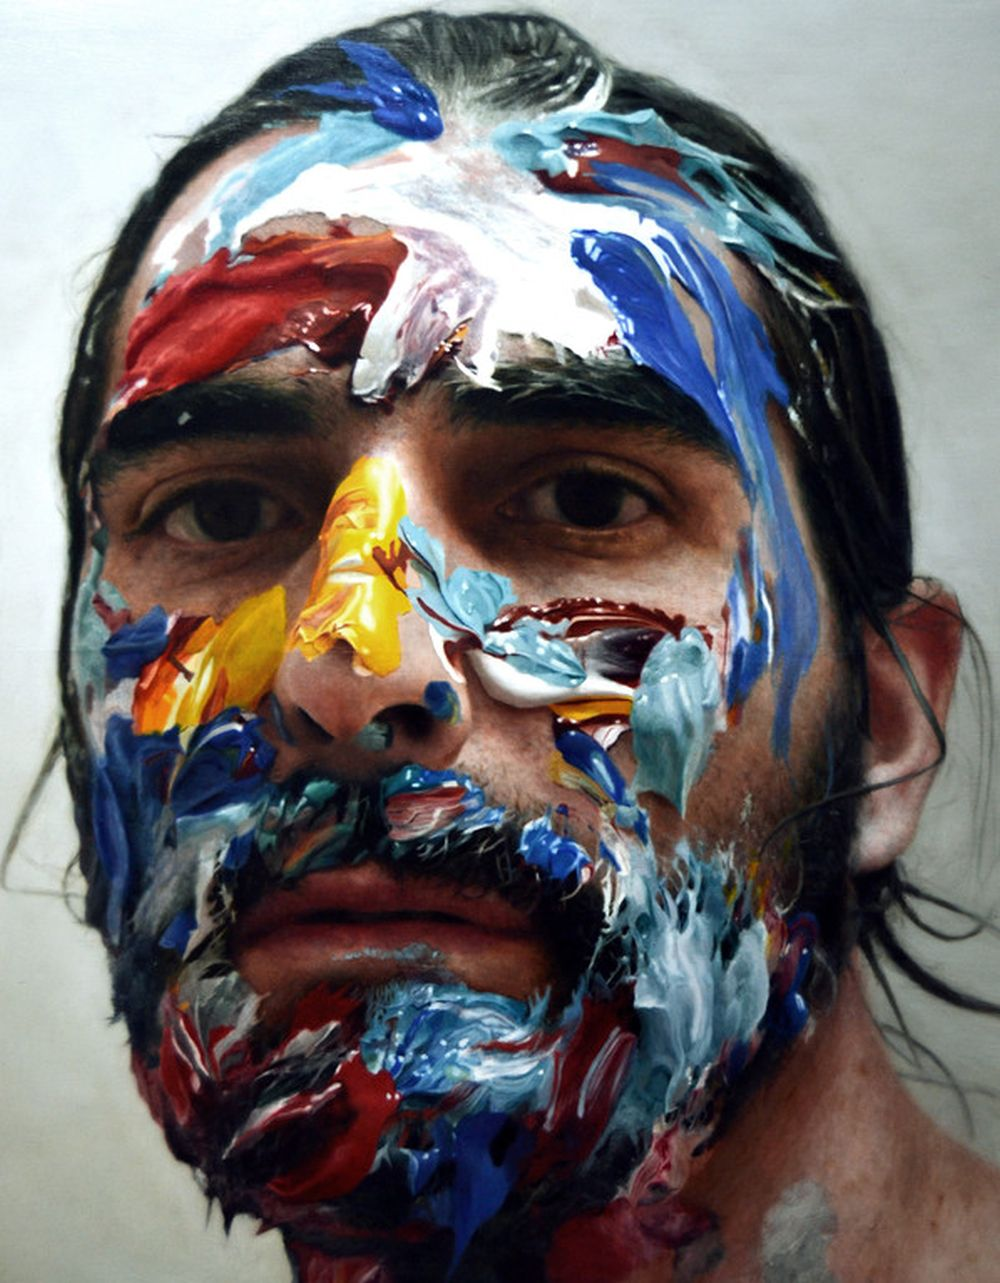 A Unique Series Of Self-Portrait Paintings By Eloy Morales  — Amazingly Rendered In Hyper-realistic Fashion